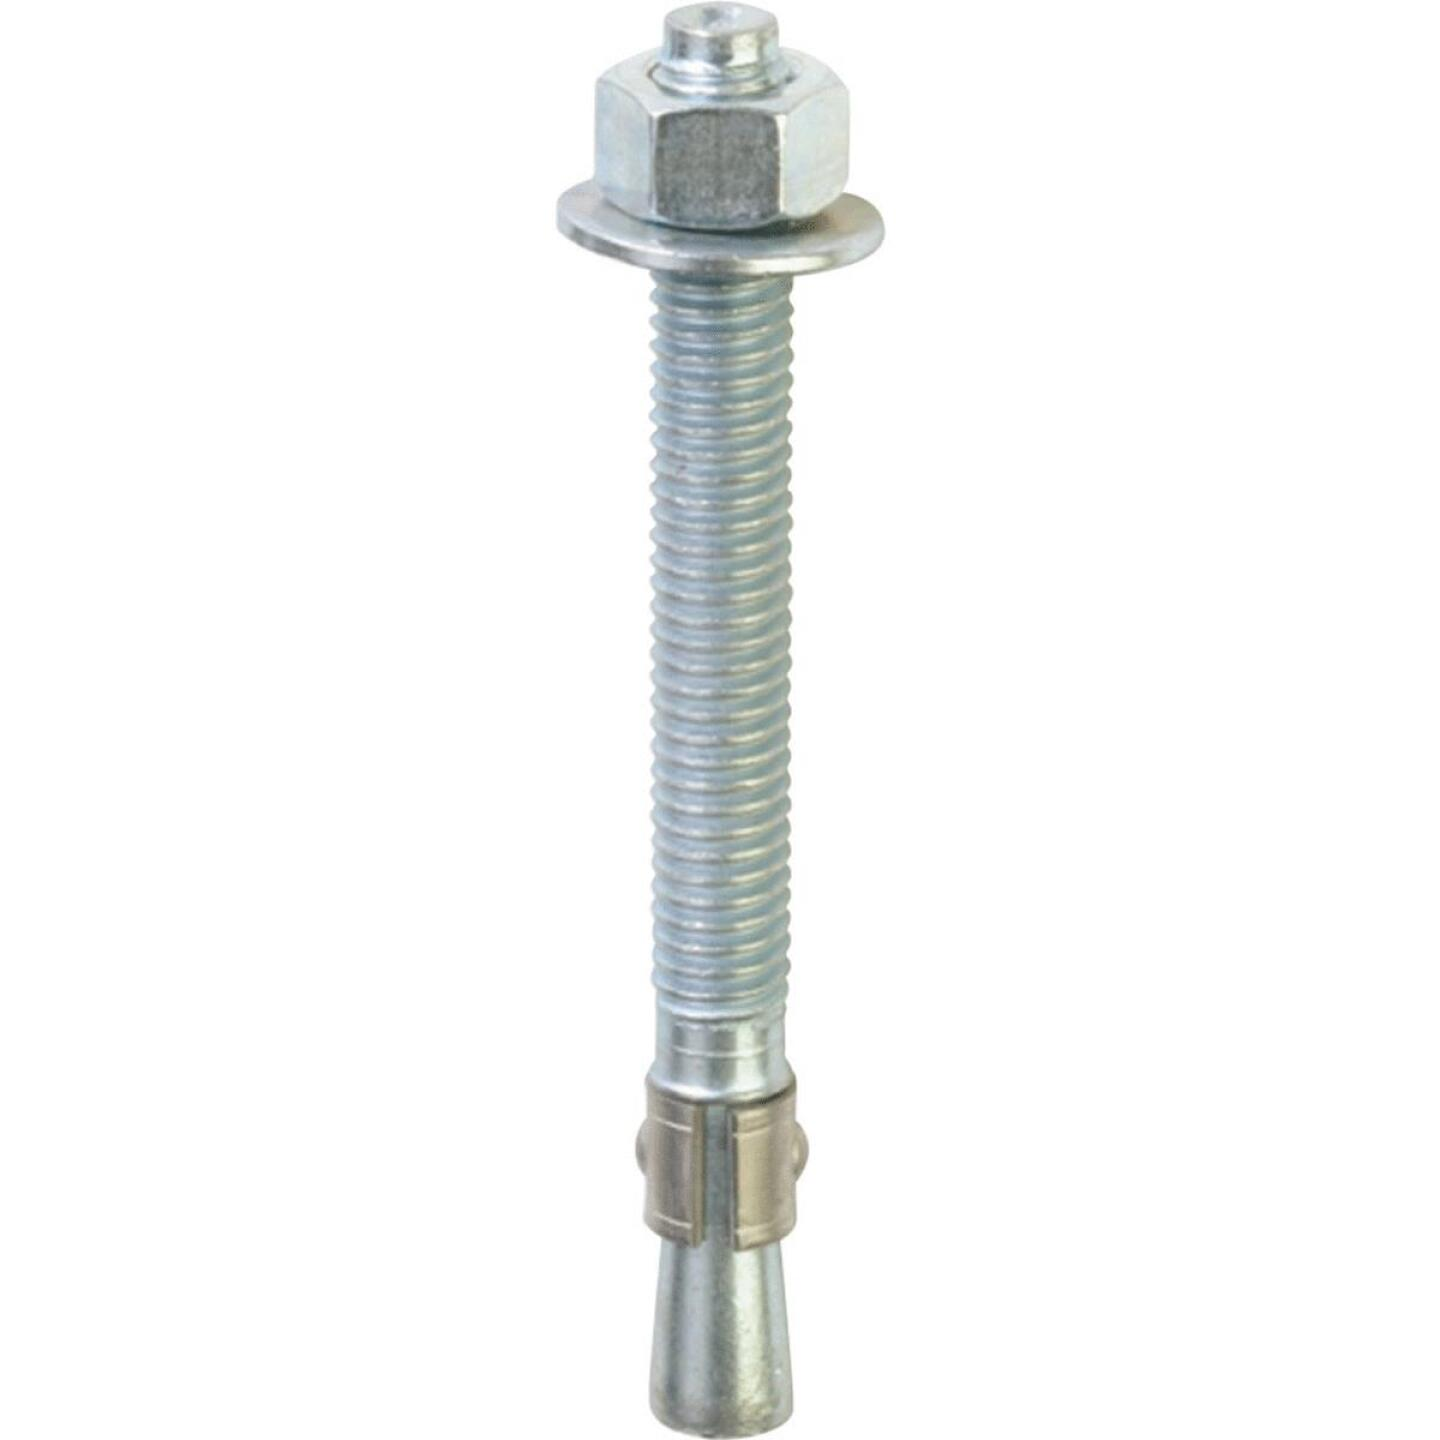 Red Head 3/8 In. x 5 In. Zinc Wedge Anchor Bolt Image 1